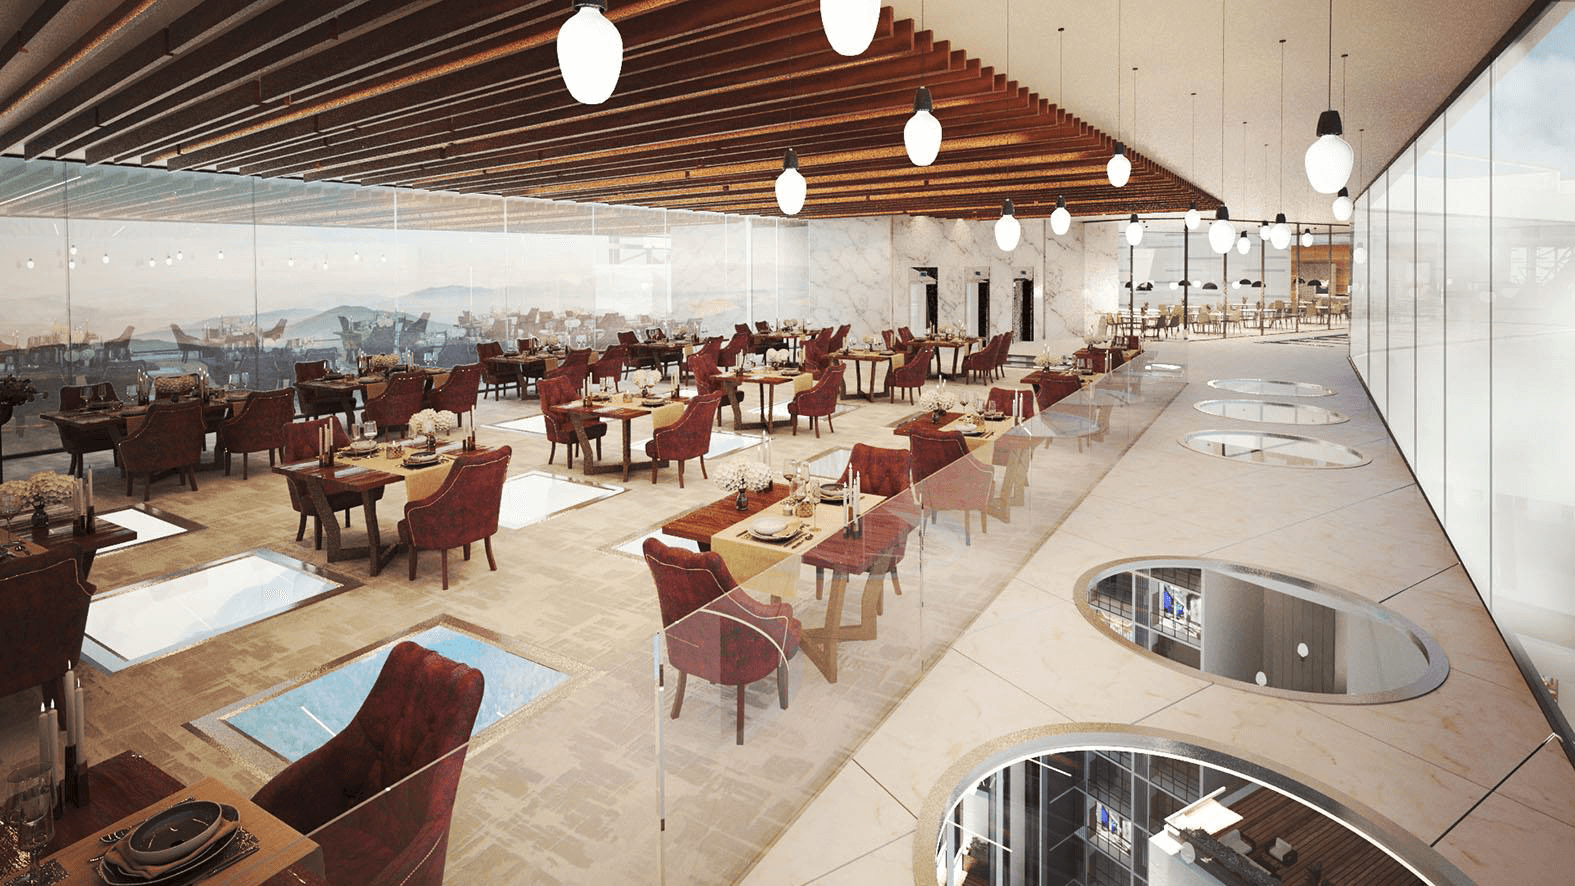 Facility - Grand Ion Majestic Sky Dining